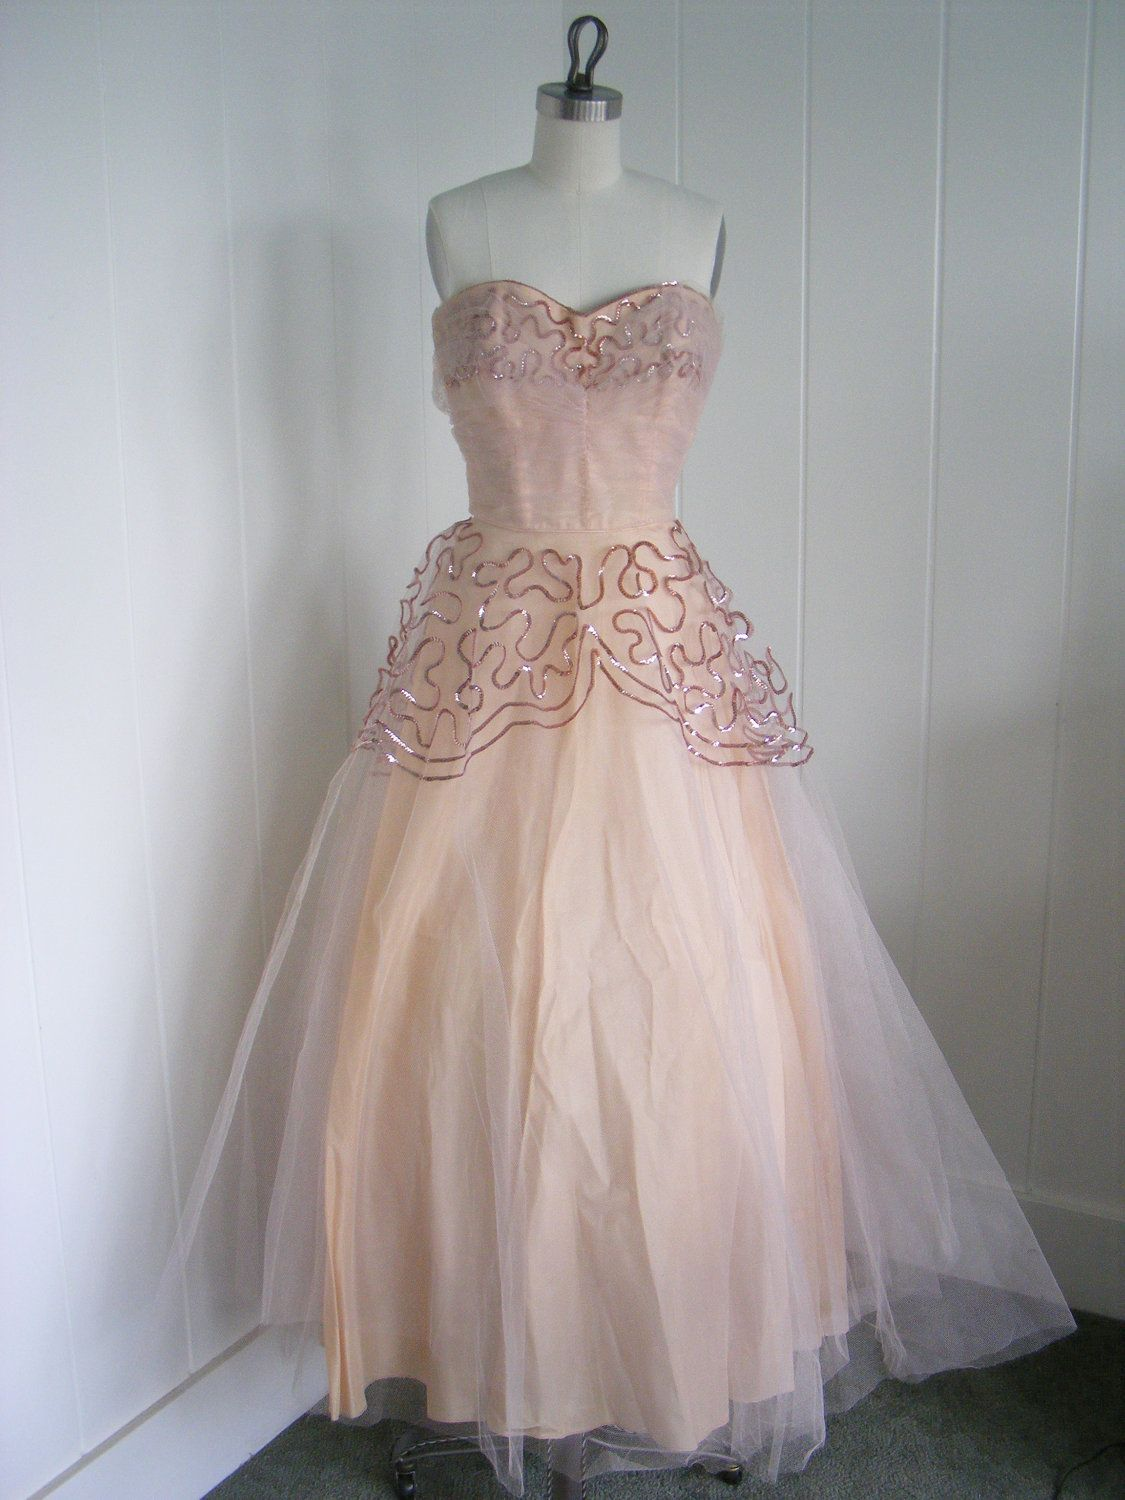 1940 S 1950 S Vintage Tulle Pink Prom Dress Shelf Bust With Sequin Design Throughout Pink Prom Dress Pink Prom Dresses [ 1500 x 1125 Pixel ]